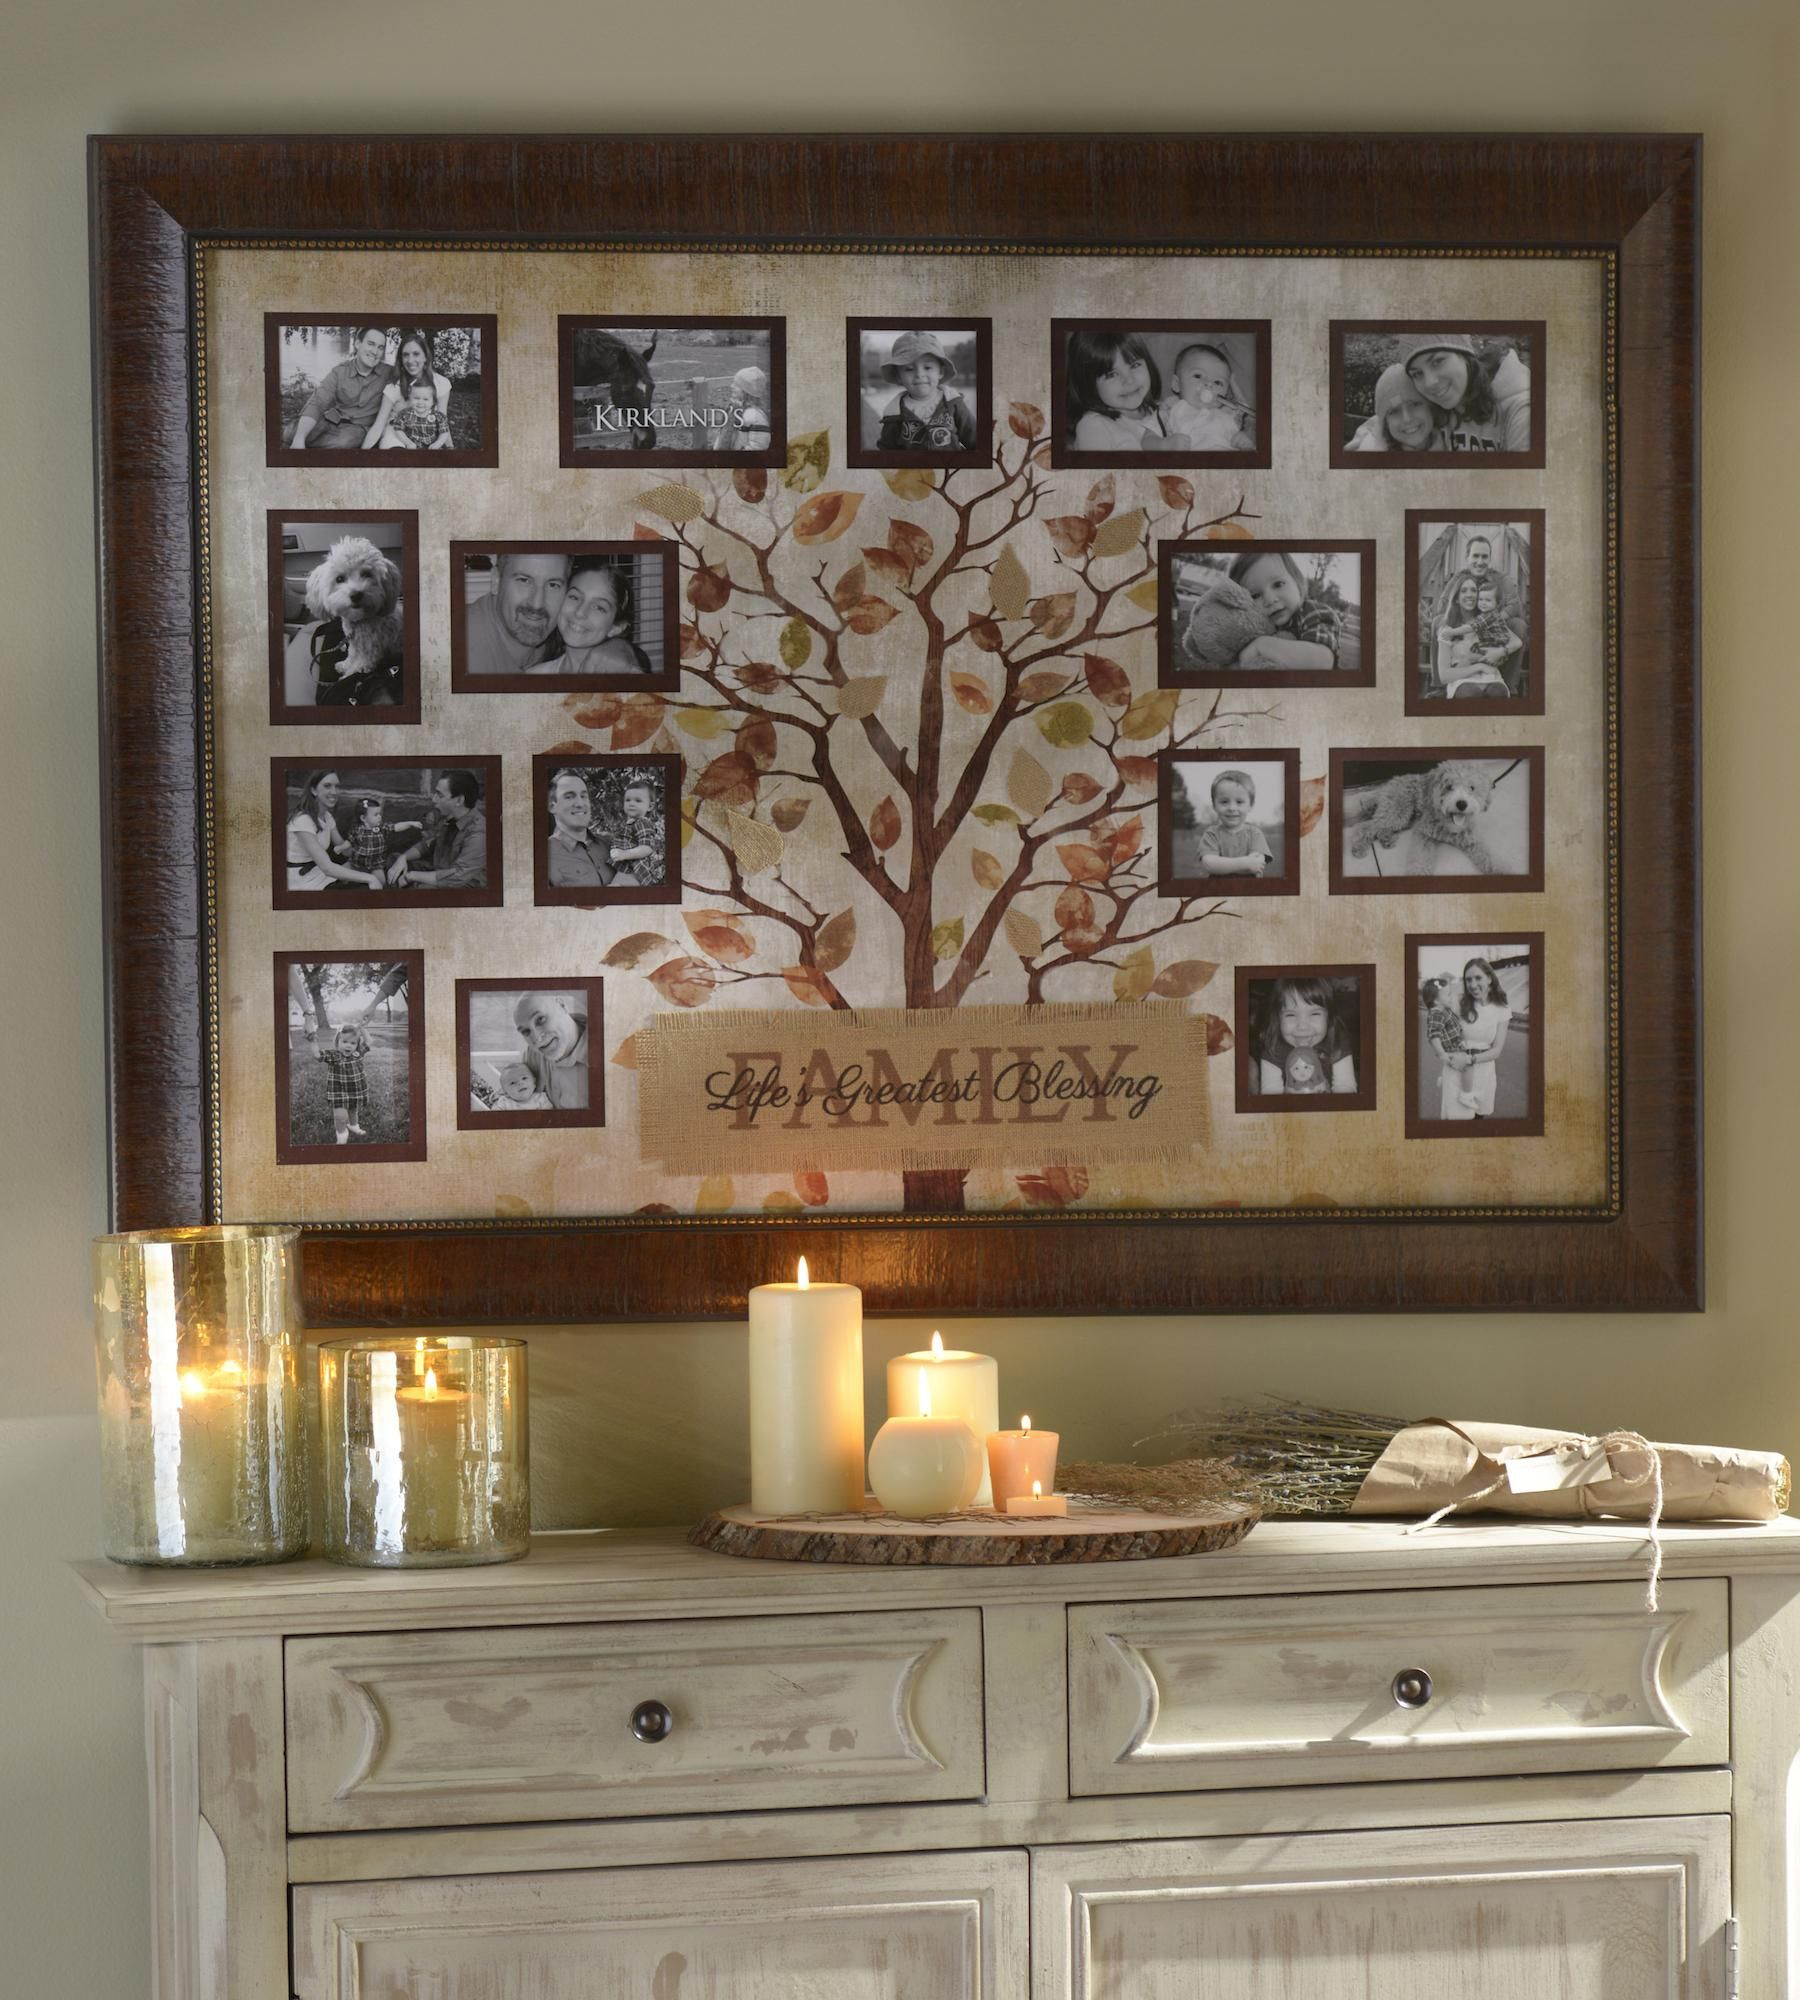 It Doesn T Count As Bragging When It S About Your Family Show Off Your Family Tree With One Of Kirkl Collage Frames Wall Decor Sale Family Tree Picture Frames